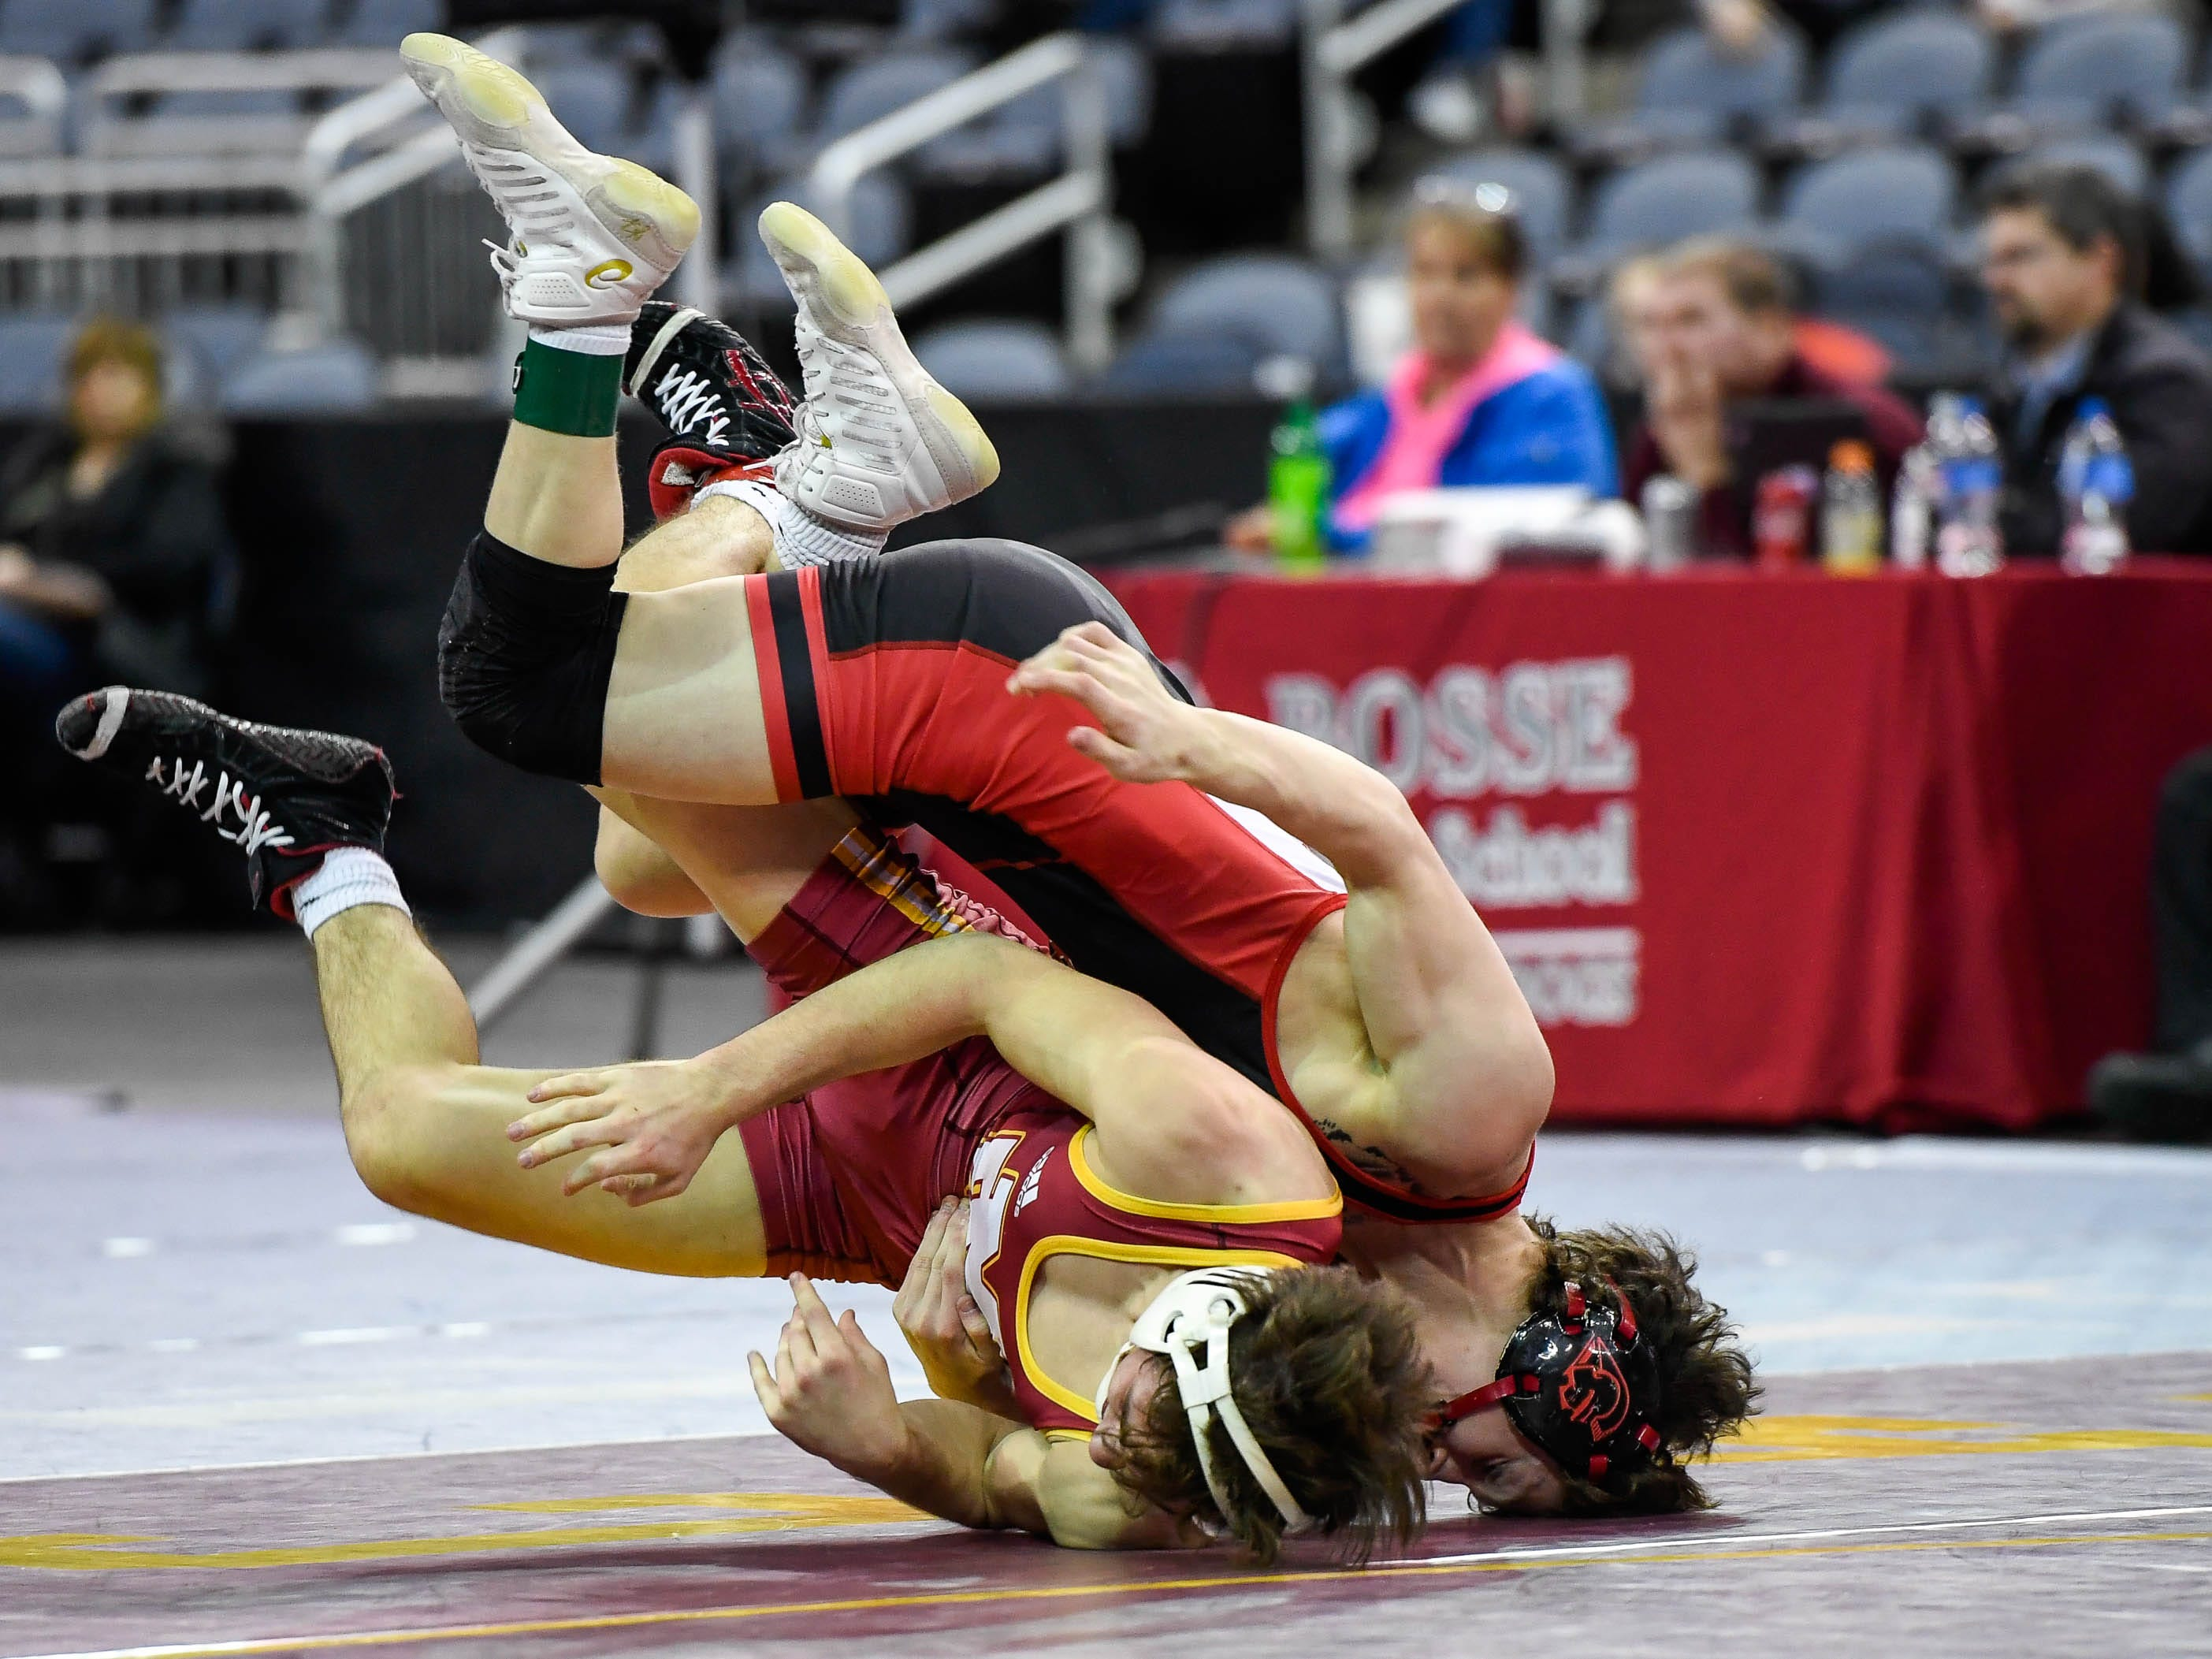 Blake Boarman, Evansville Mater Dei, wrestles Brayden Littell, Center Grove, in the 120 weight class at the Indiana High School Athletic Association Semi-State Wrestling Tournament held at the Ford Center Saturday, February 9, 2019.